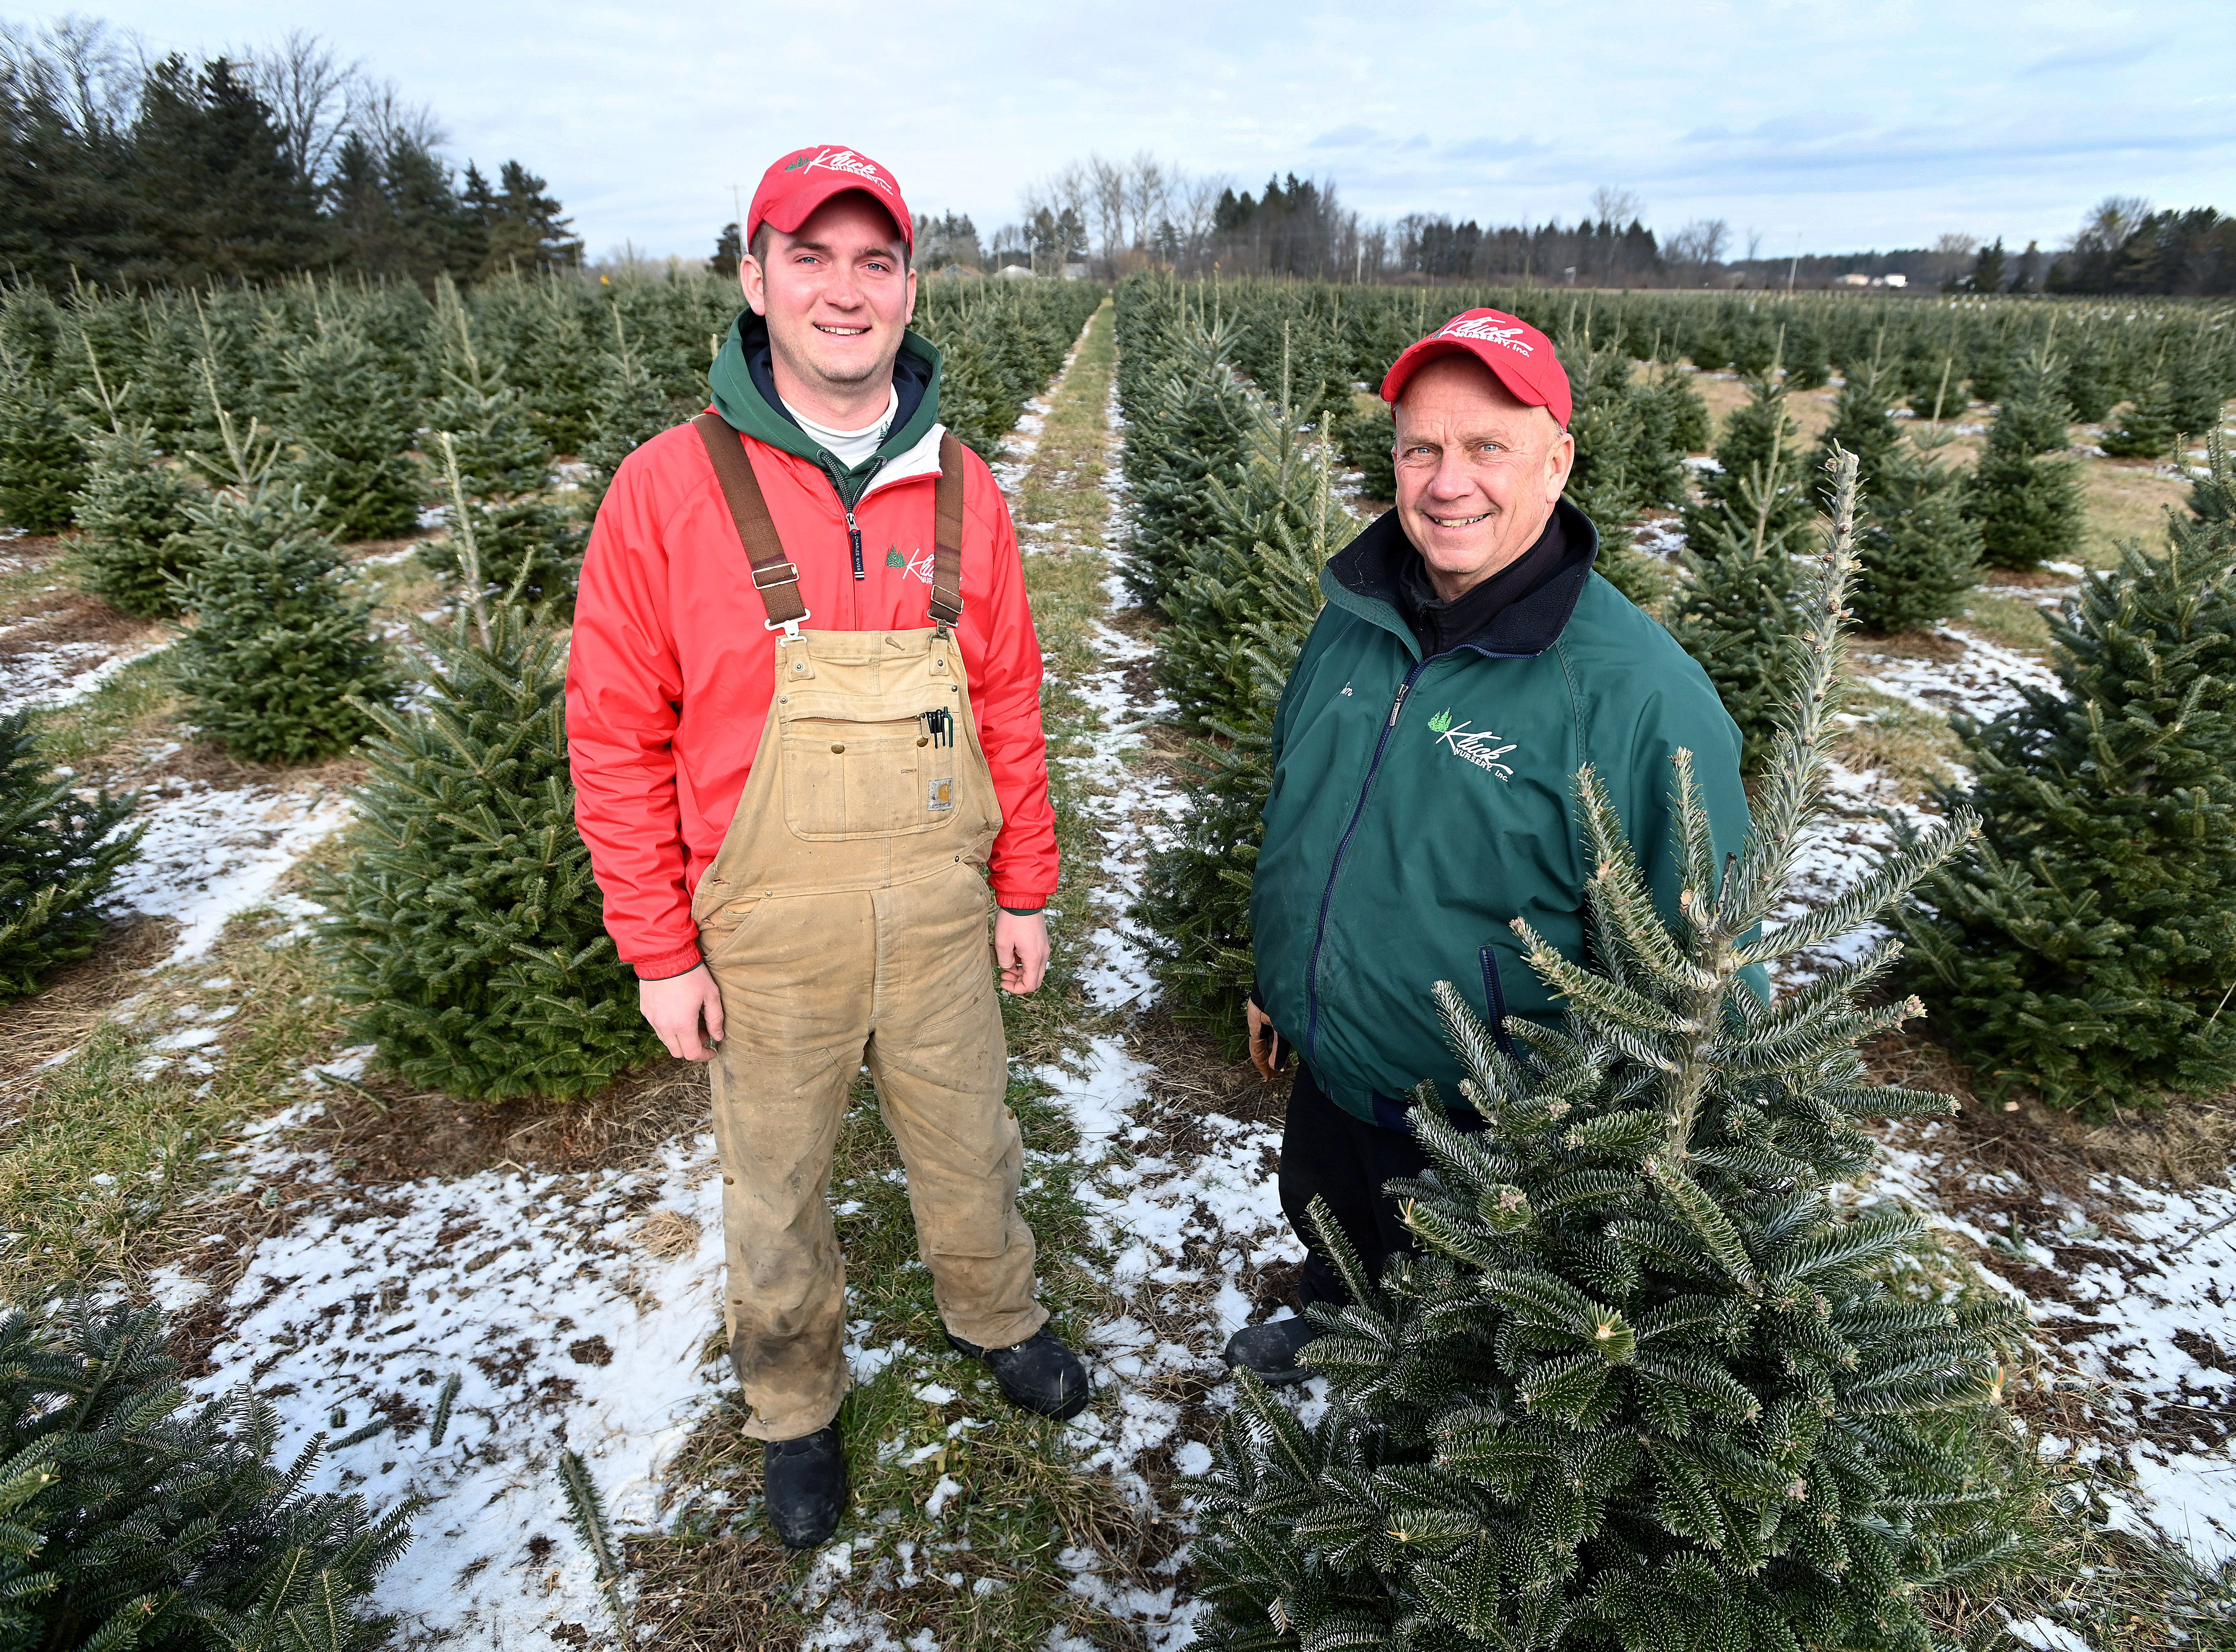 Father and son team Tom, right, and Tyler Kluck have to look ahead and make sure there are enough trees being grown for future harvests. Tom's grandfather Walter started the Christmas tree business on the family dairy farm in the 1920s.